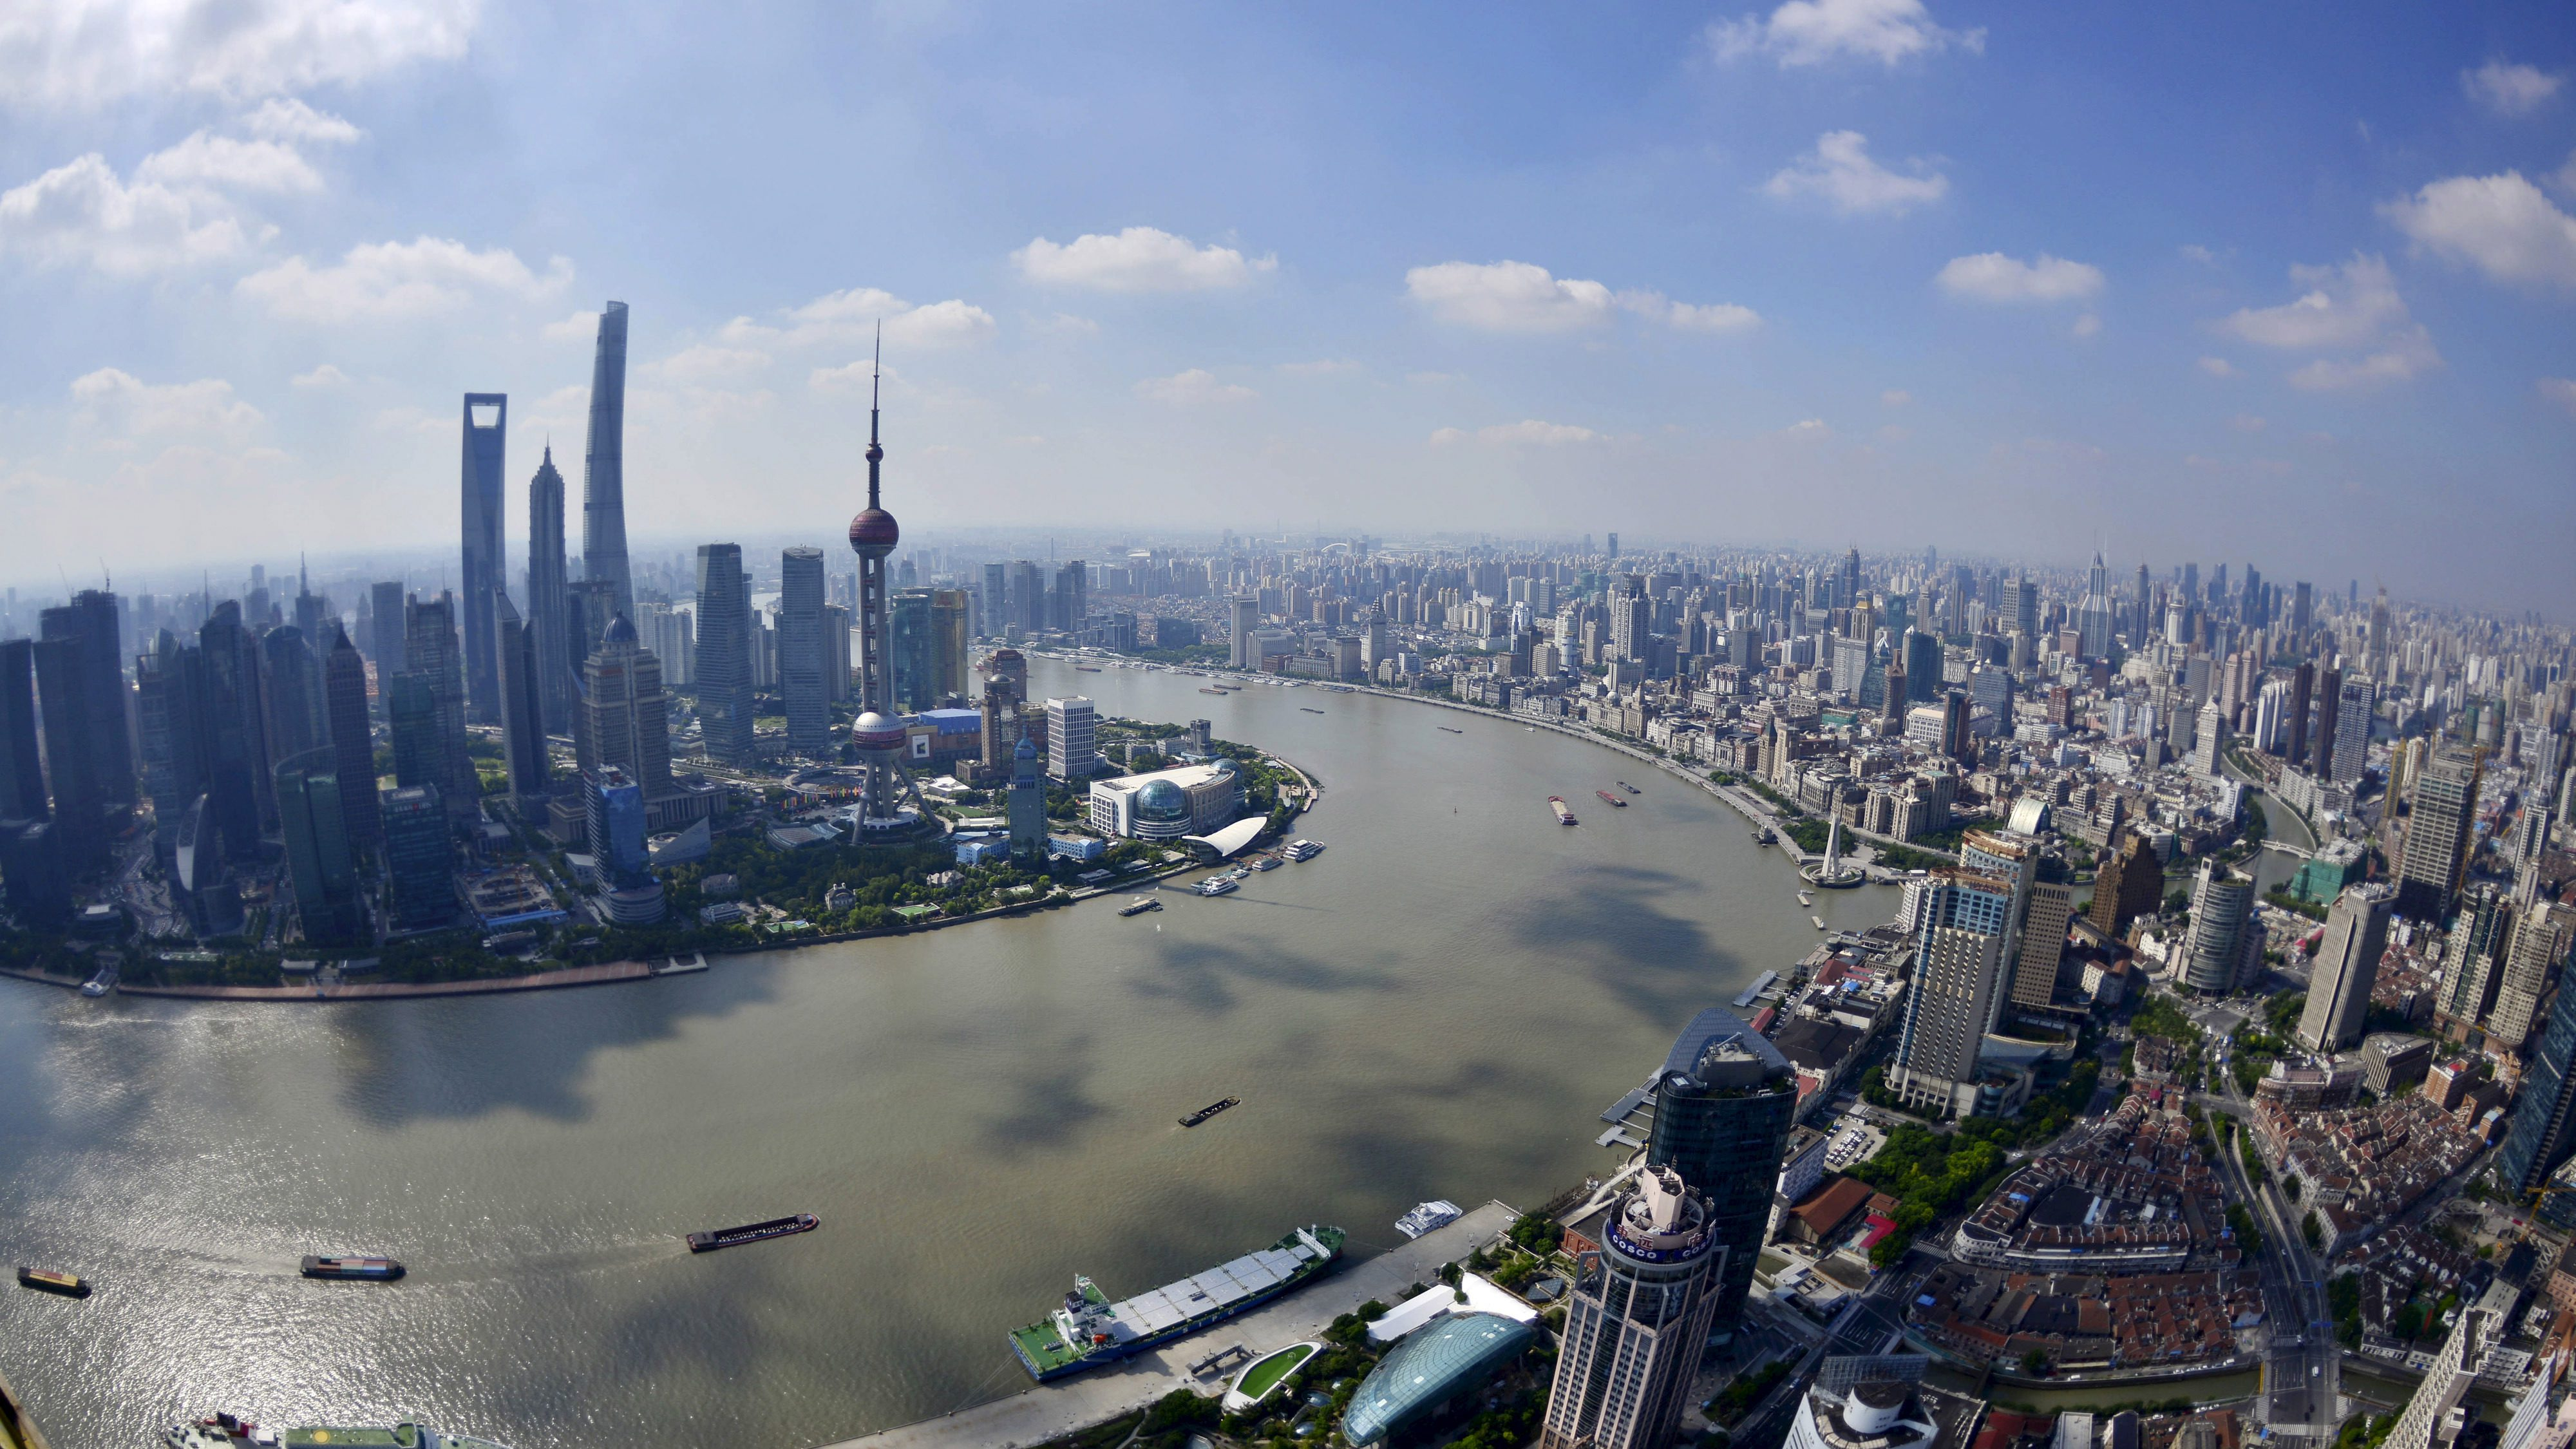 A general view shows the Shanghai city skyline on a sunny day in Shanghai, China, September 11, 2015.  CHINA OUT. NO COMMERCIAL OR EDITORIAL SALES IN CHINA  - GF10000201319